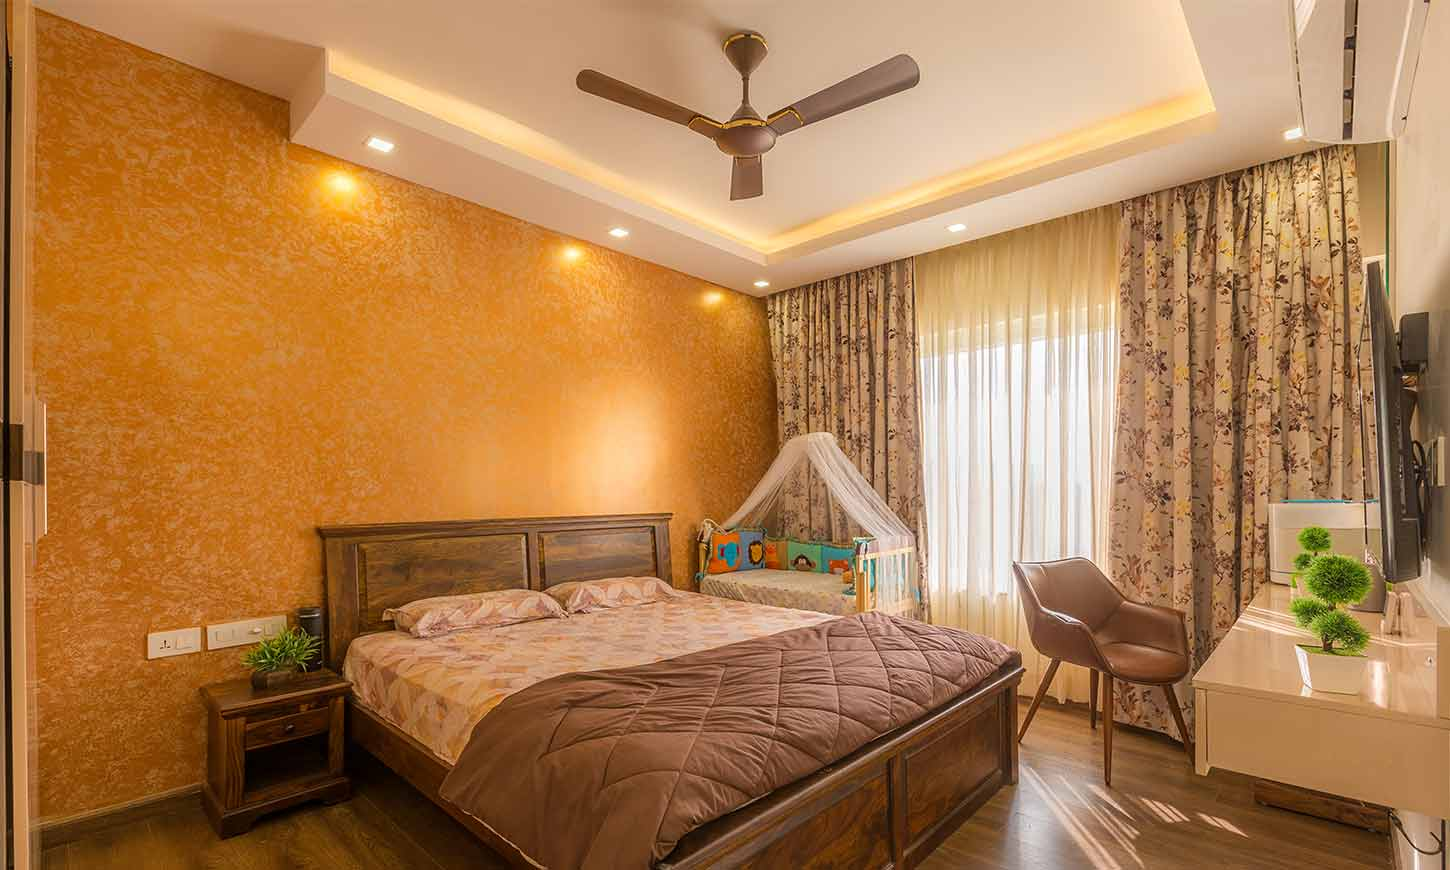 Bedroom interior design bangalore for rohan iksha apartment with a tv unit and a baby cot beside it